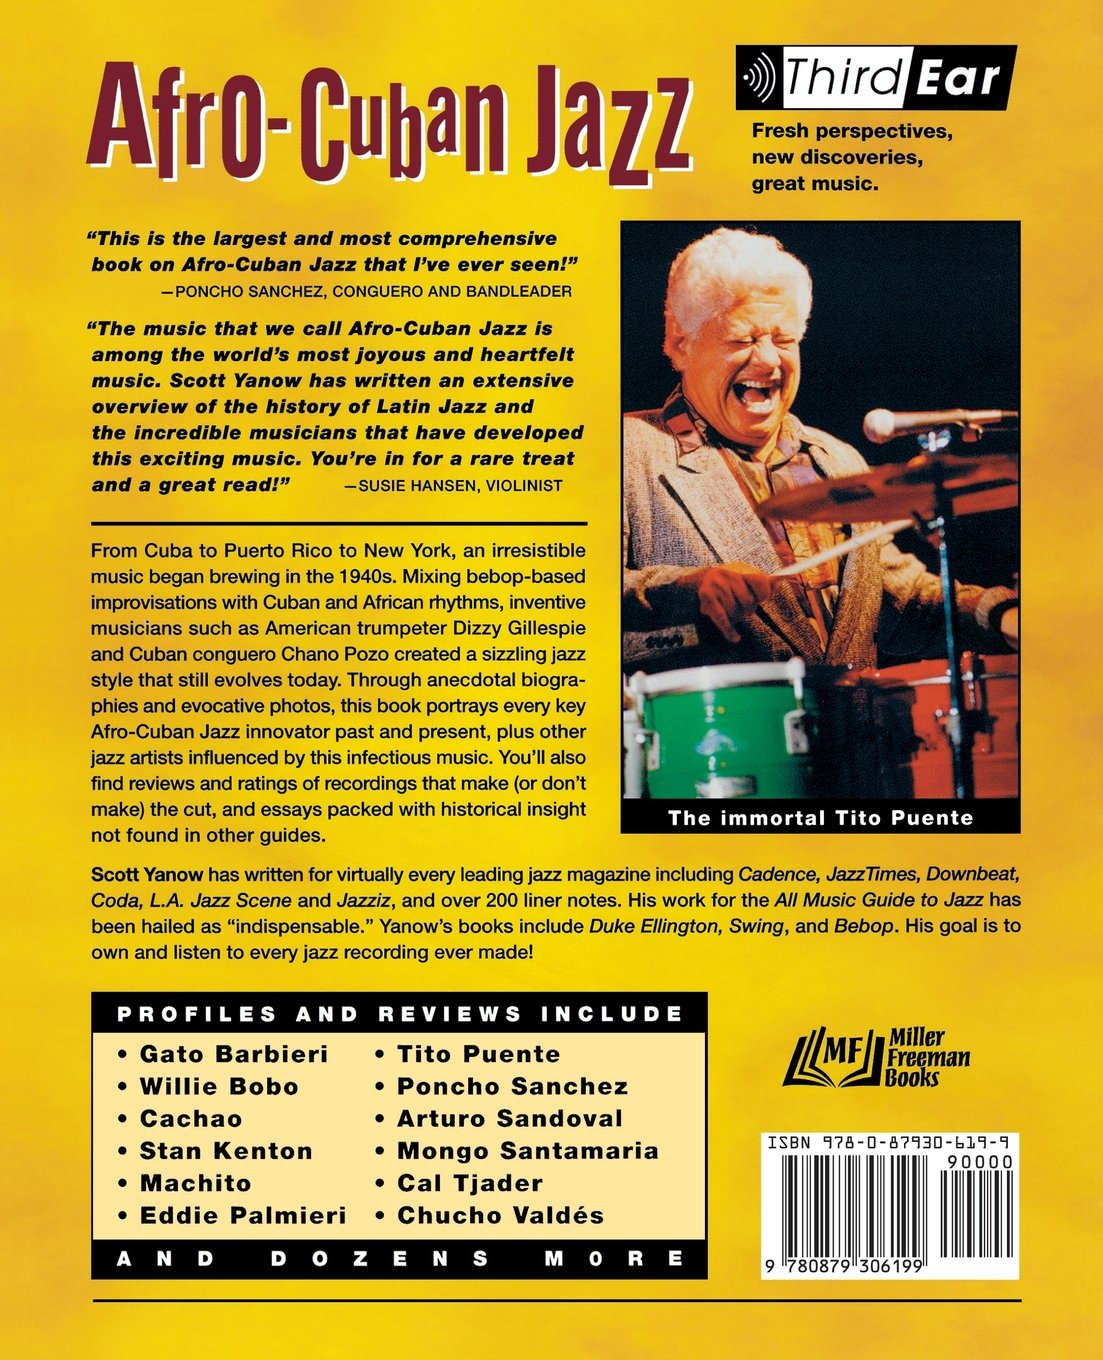 Amazon.com: Afro-Cuban Jazz : Third Ear - The Essential Listening Companion  (9780879306199): Scott Yanow: Books